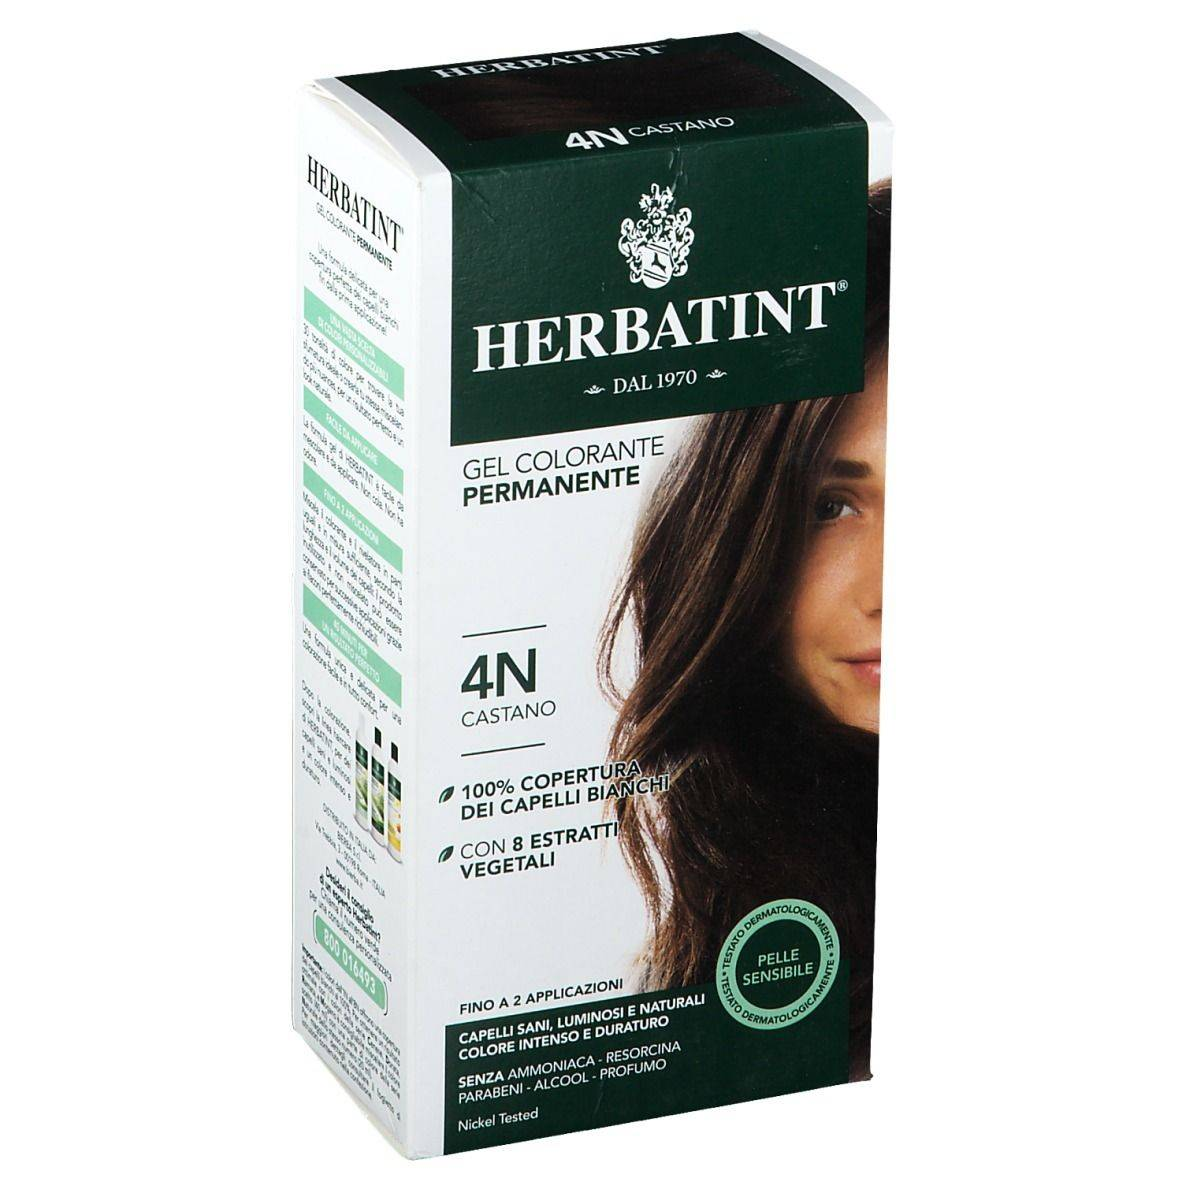 Herbatint ® Gel Colorante Permanente 150 ml Lozione